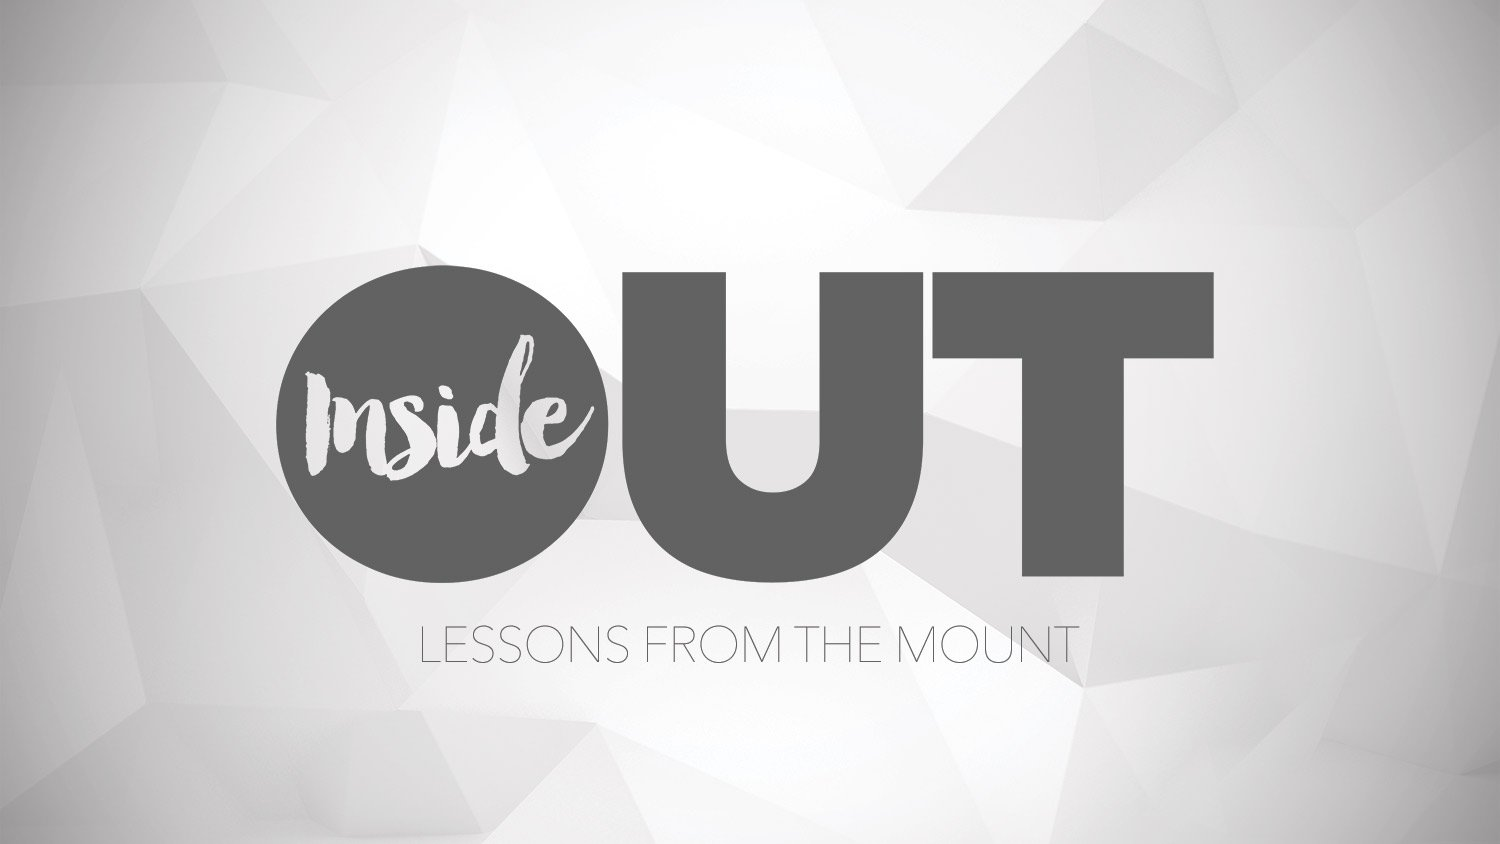 Inside Out Sermon Series - The Sermon On The Mount at Tabernacle | Experience Family - Ennis, TX